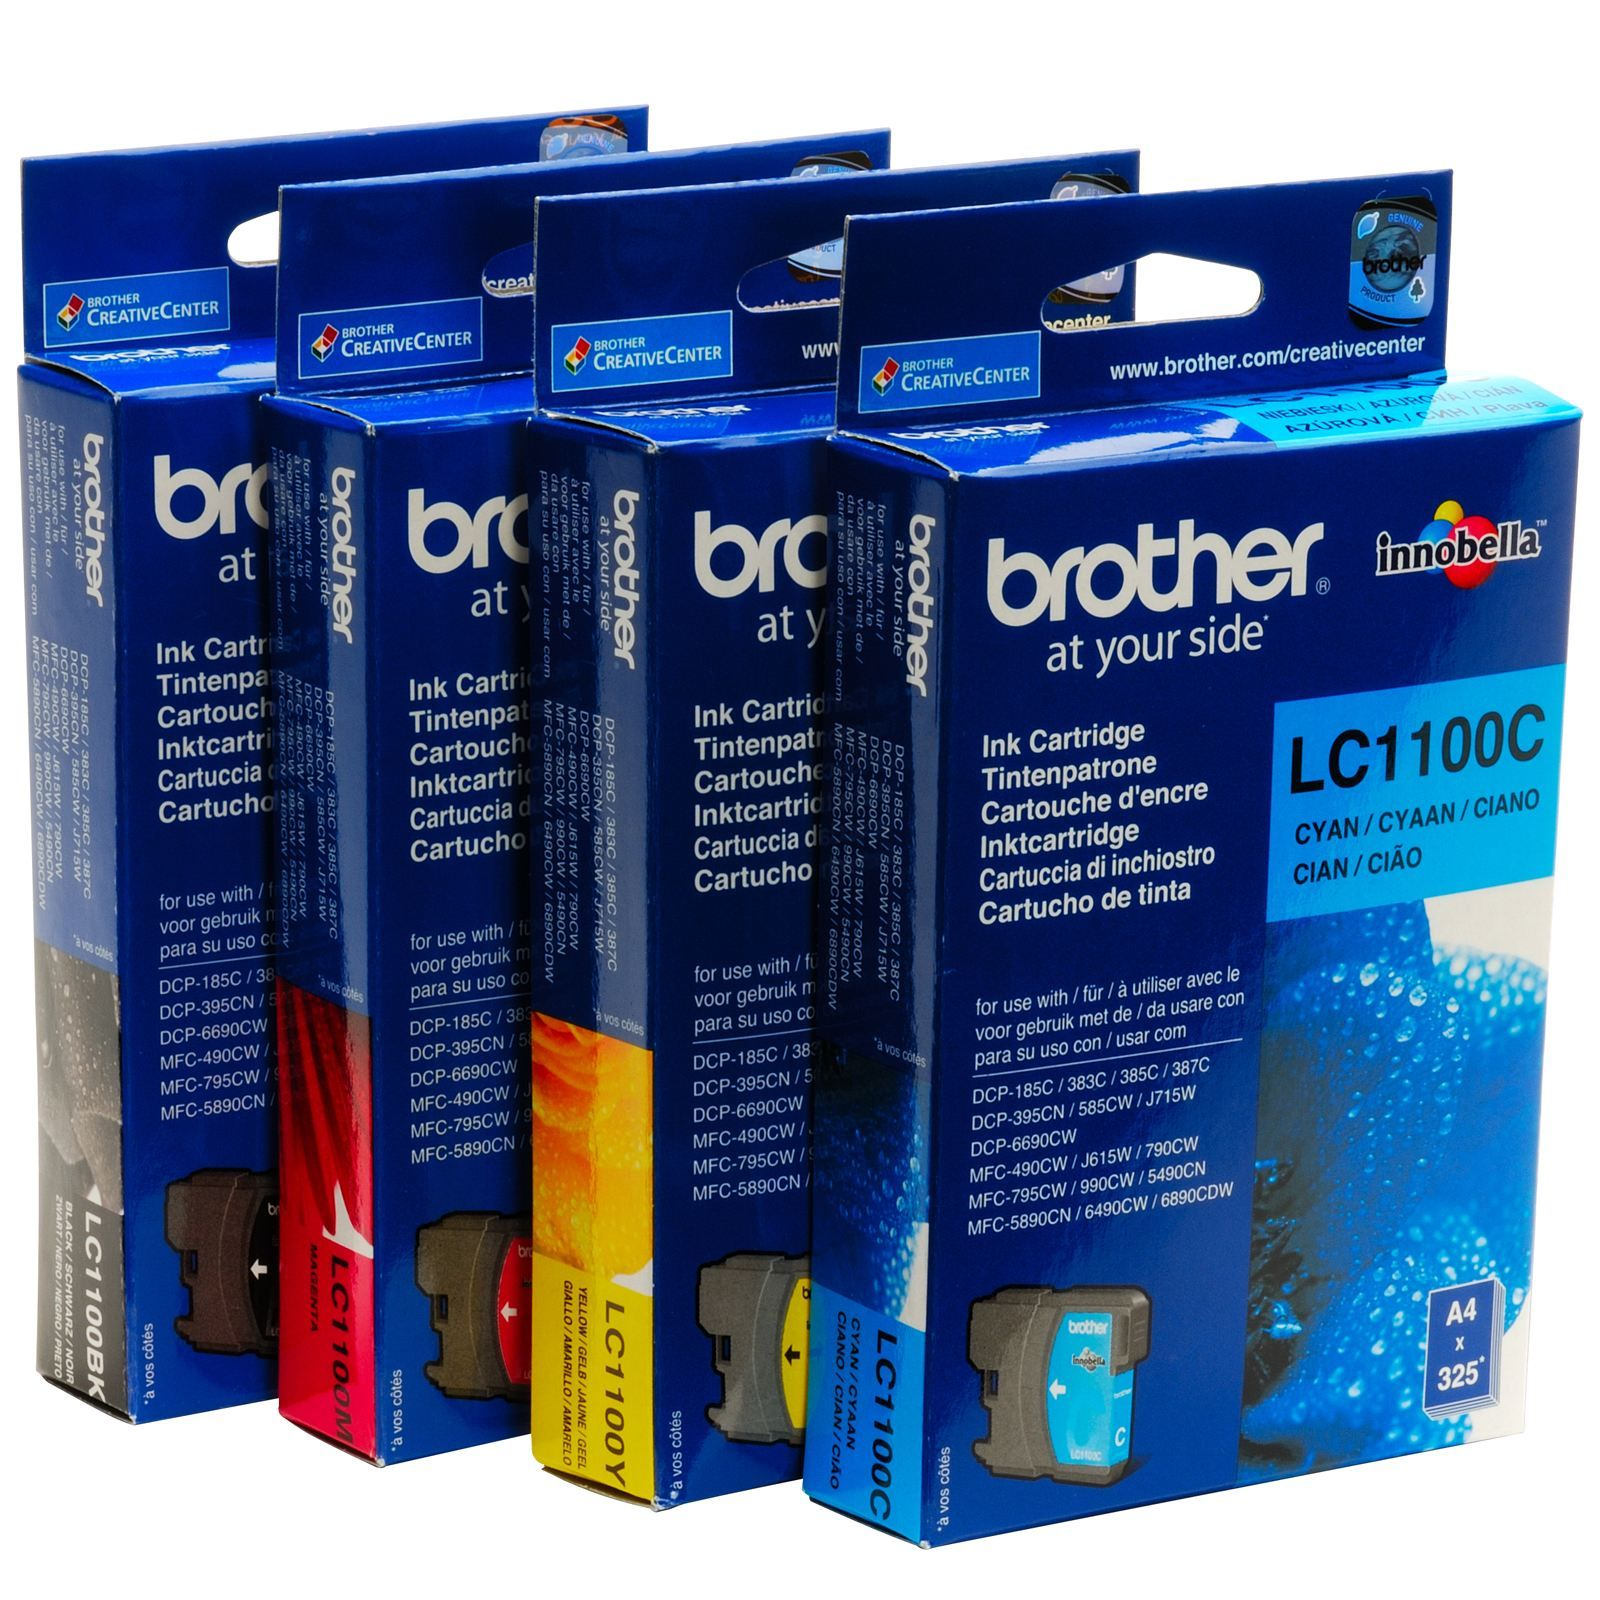 If you are looking for high printing quality ink for ...